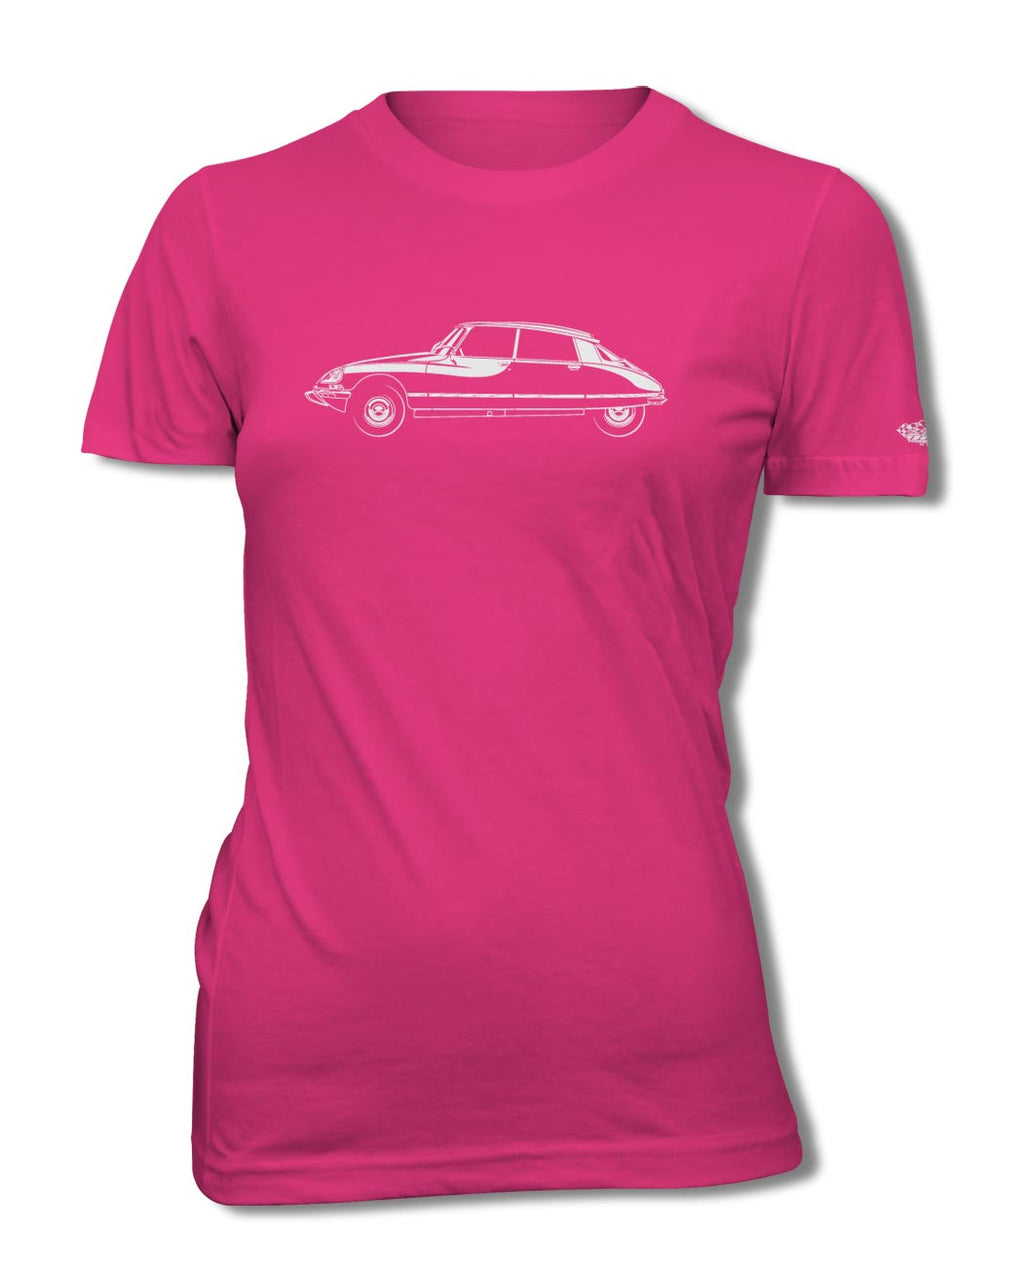 Citroen DS ID 1968 - 1976 Sedan 4 doors T-Shirt - Women - Side View